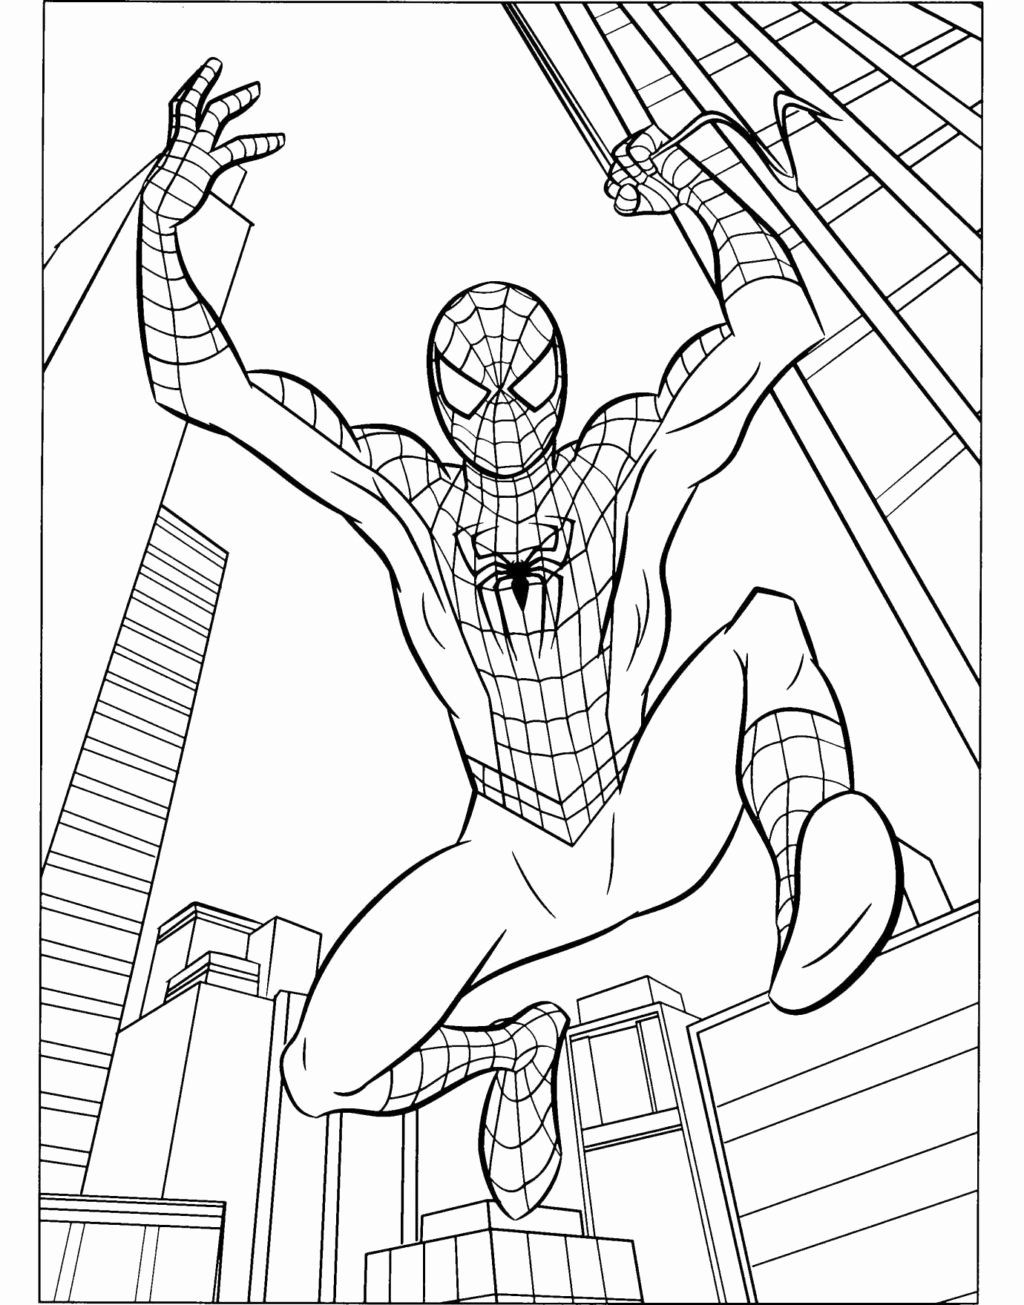 Pin By Dayana Bazan On Coloring Pages Superhero Coloring Pages Avengers Coloring Pages Superhero Coloring